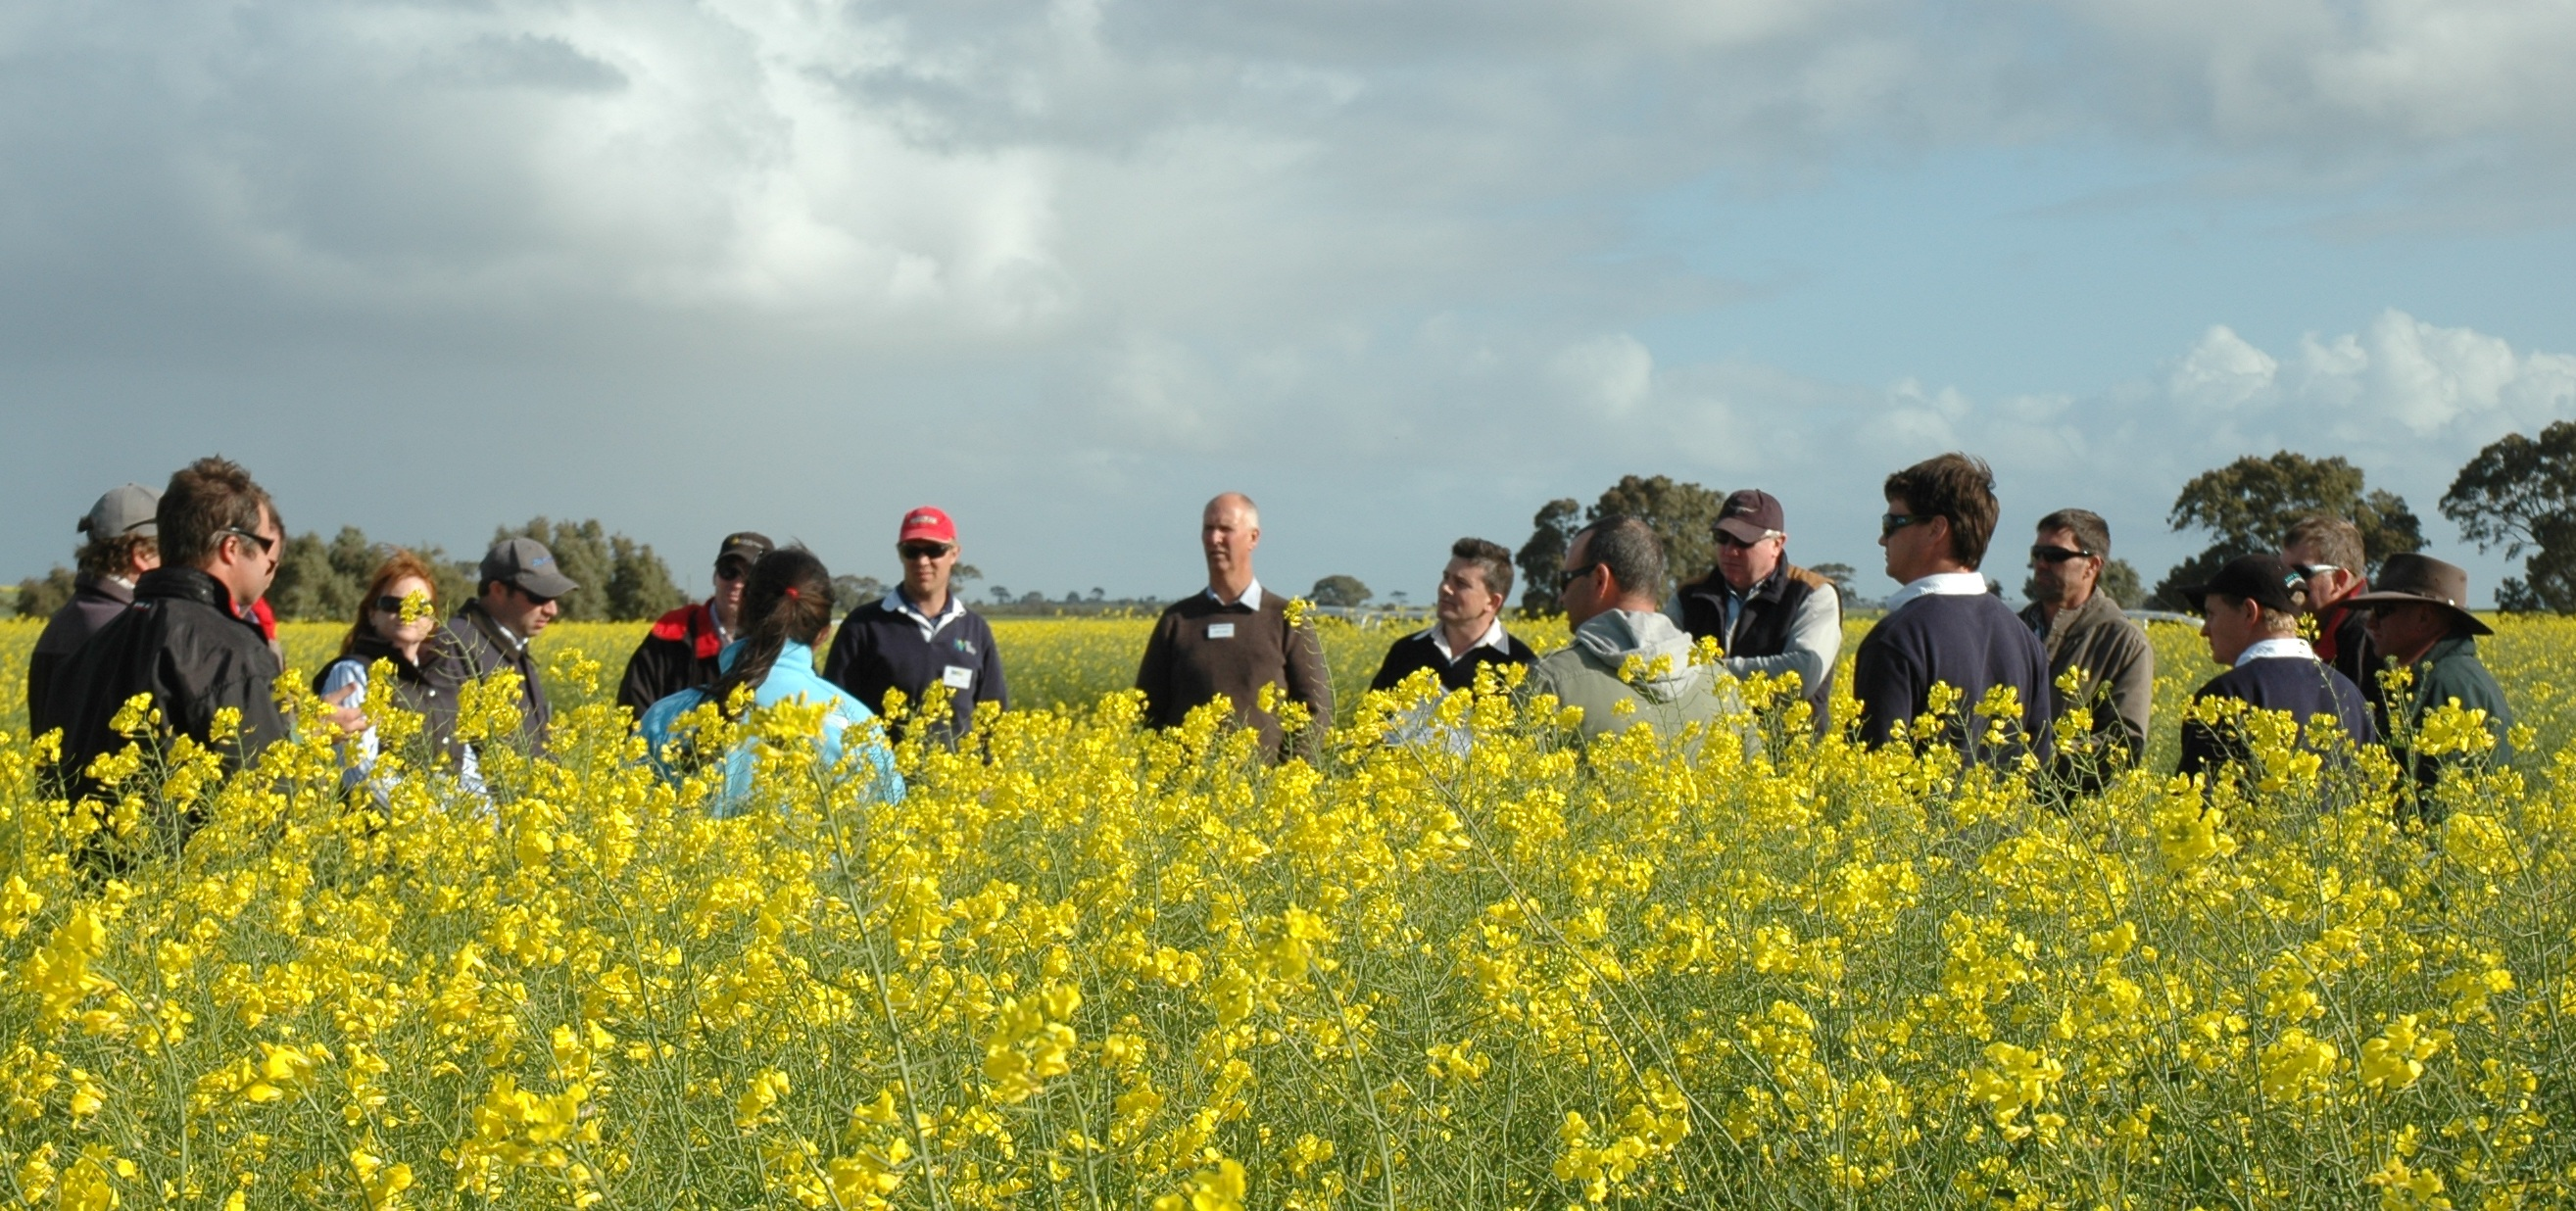 The GRDC Southern Panel on their annual spring tour